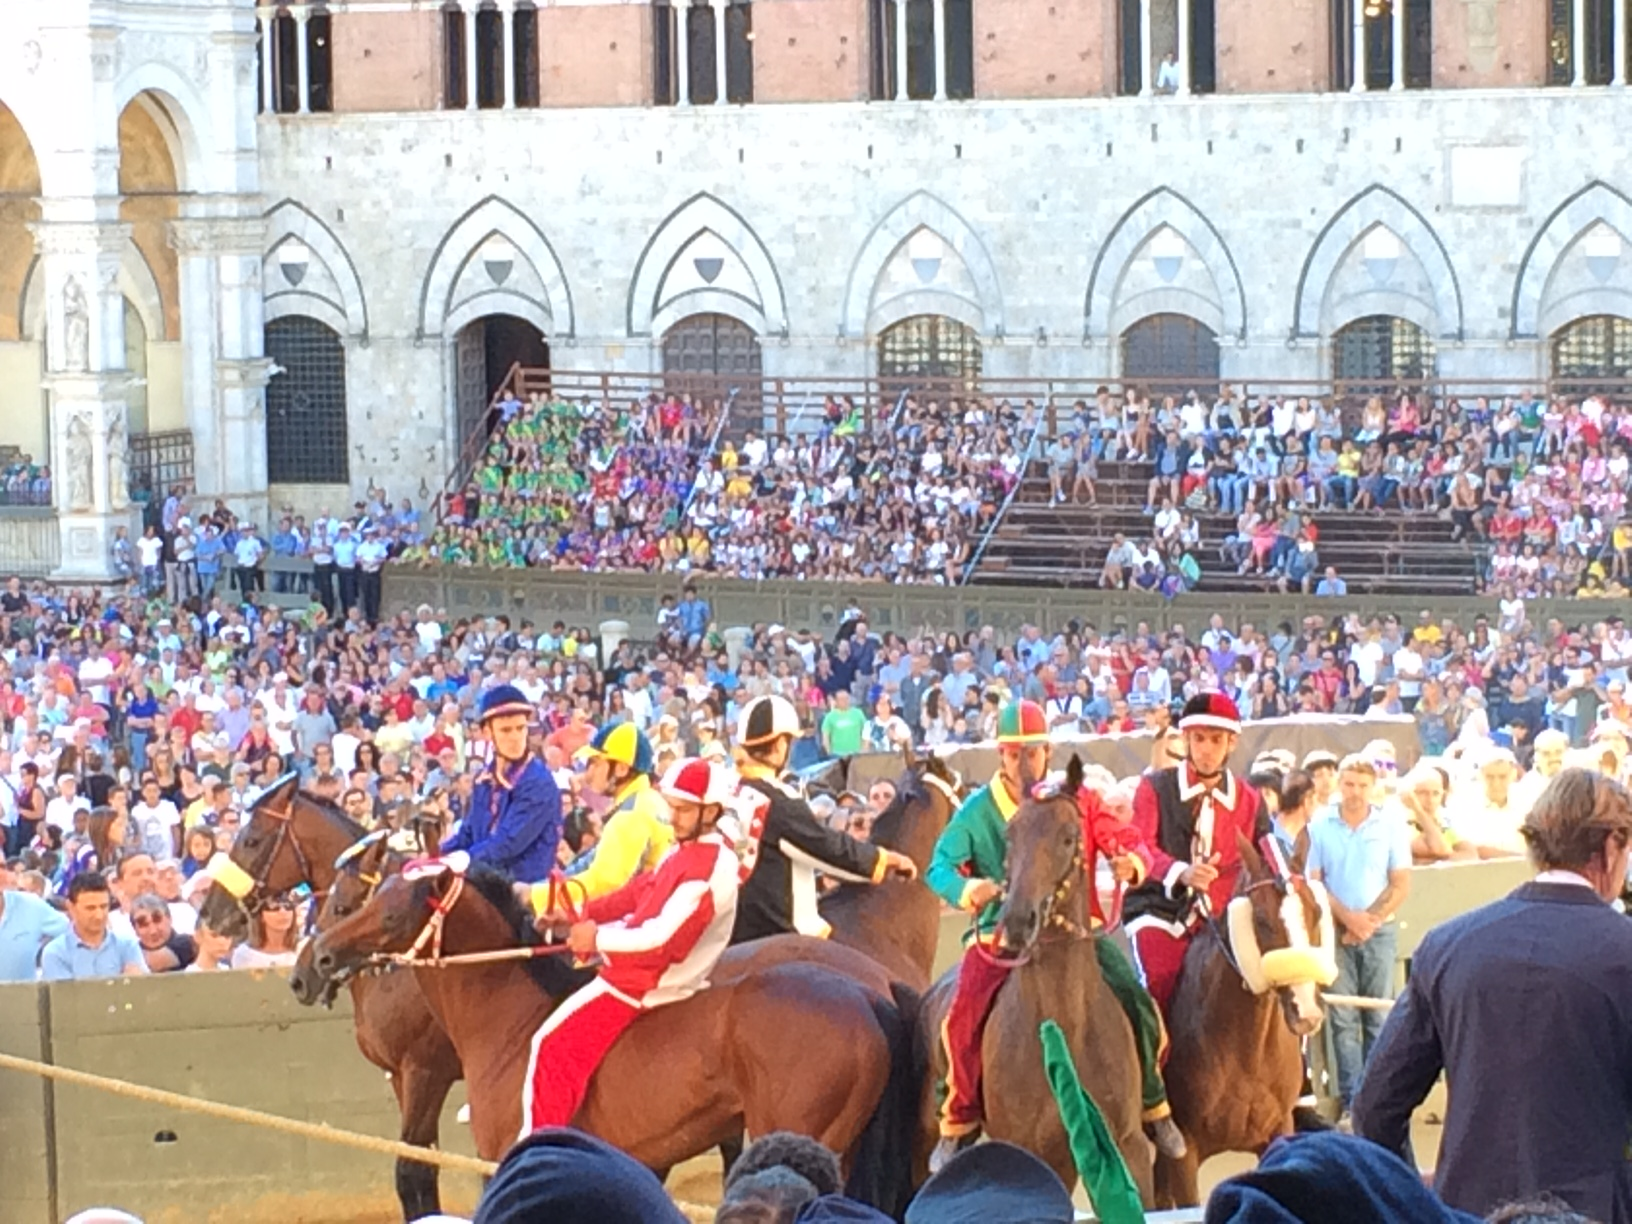 The starting line of the prova (a test run) for the Palio.